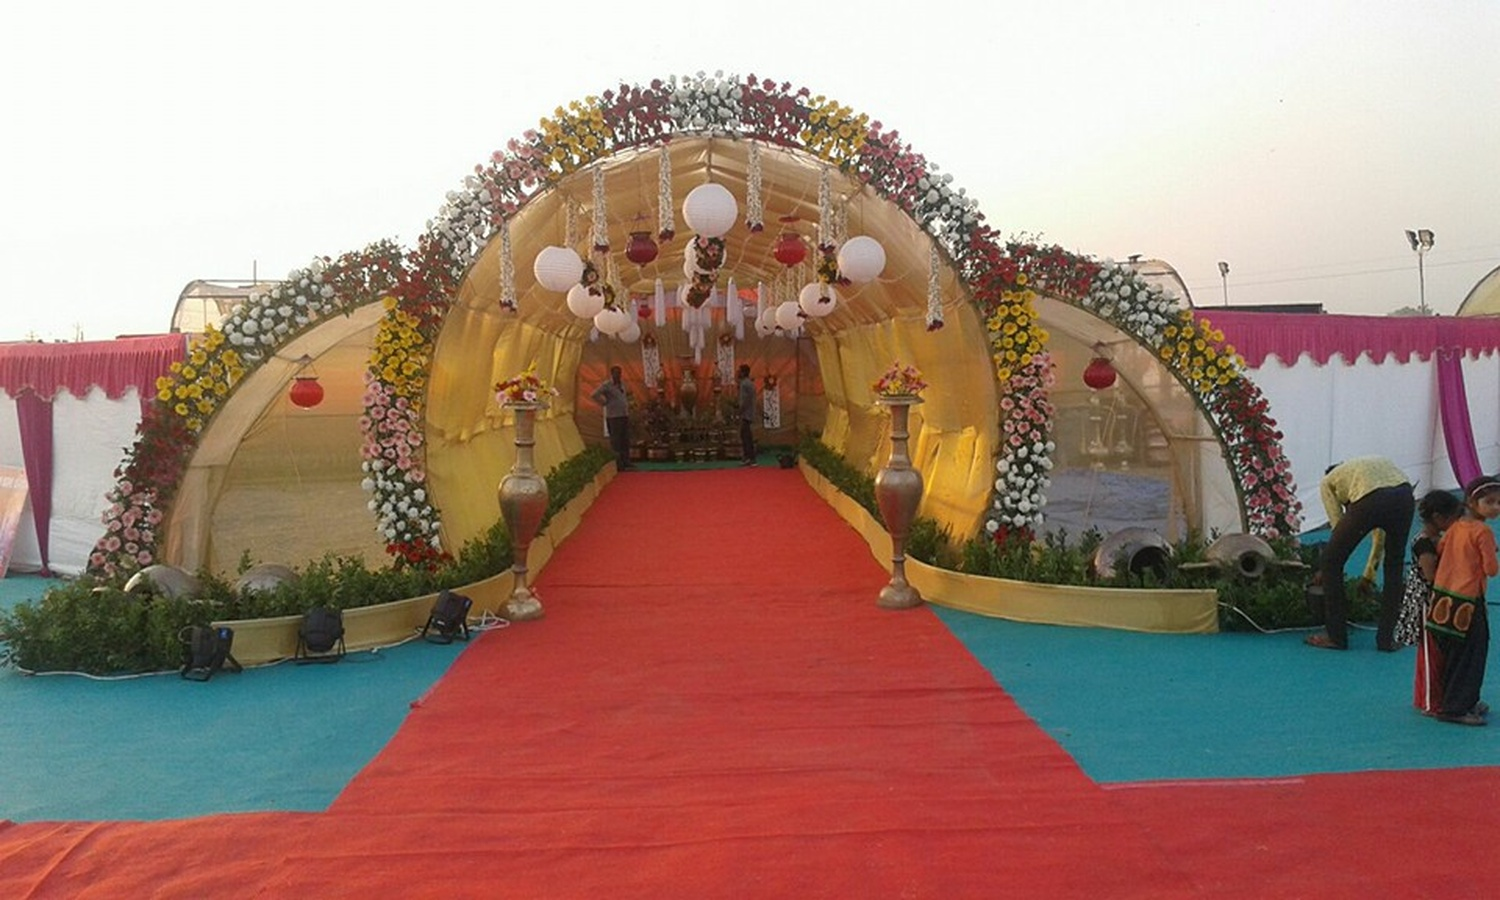 Ibs decorators wedding decorator in maninagar ahmedabad weddingz overview junglespirit Choice Image